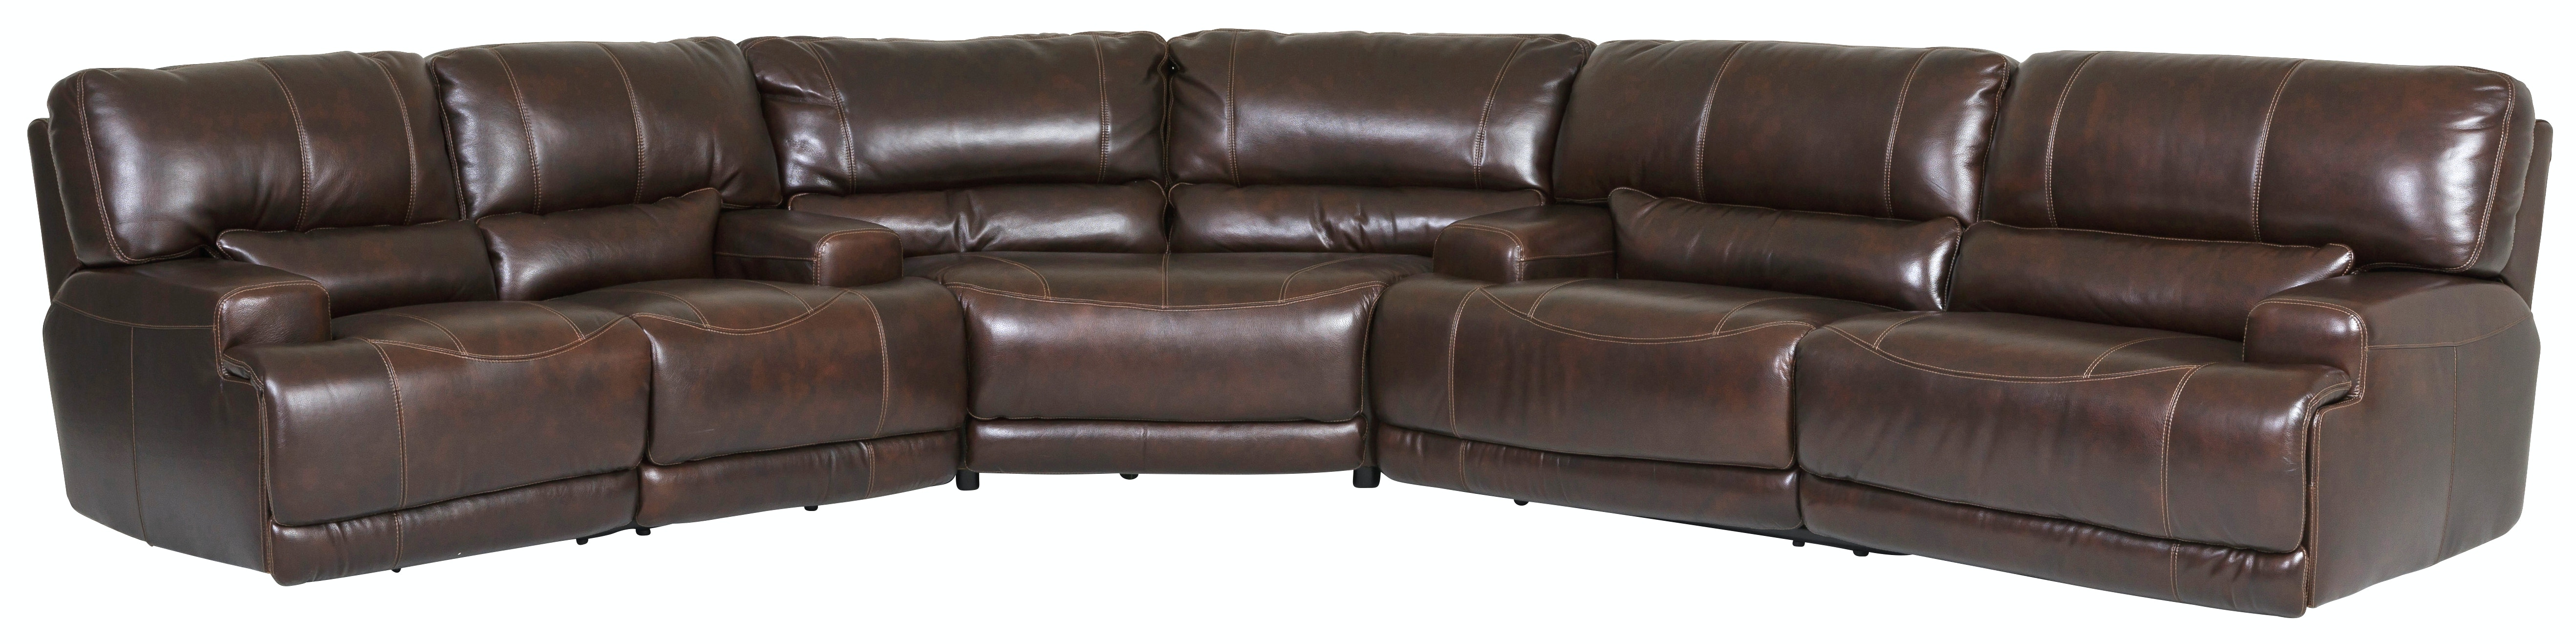 Merveilleux Stampede Leather 3 Piece Power Reclining Sectional   COFFEE GP:M090 ·  VIDEO: Simon Li Optional Rechargeable Battery Installation